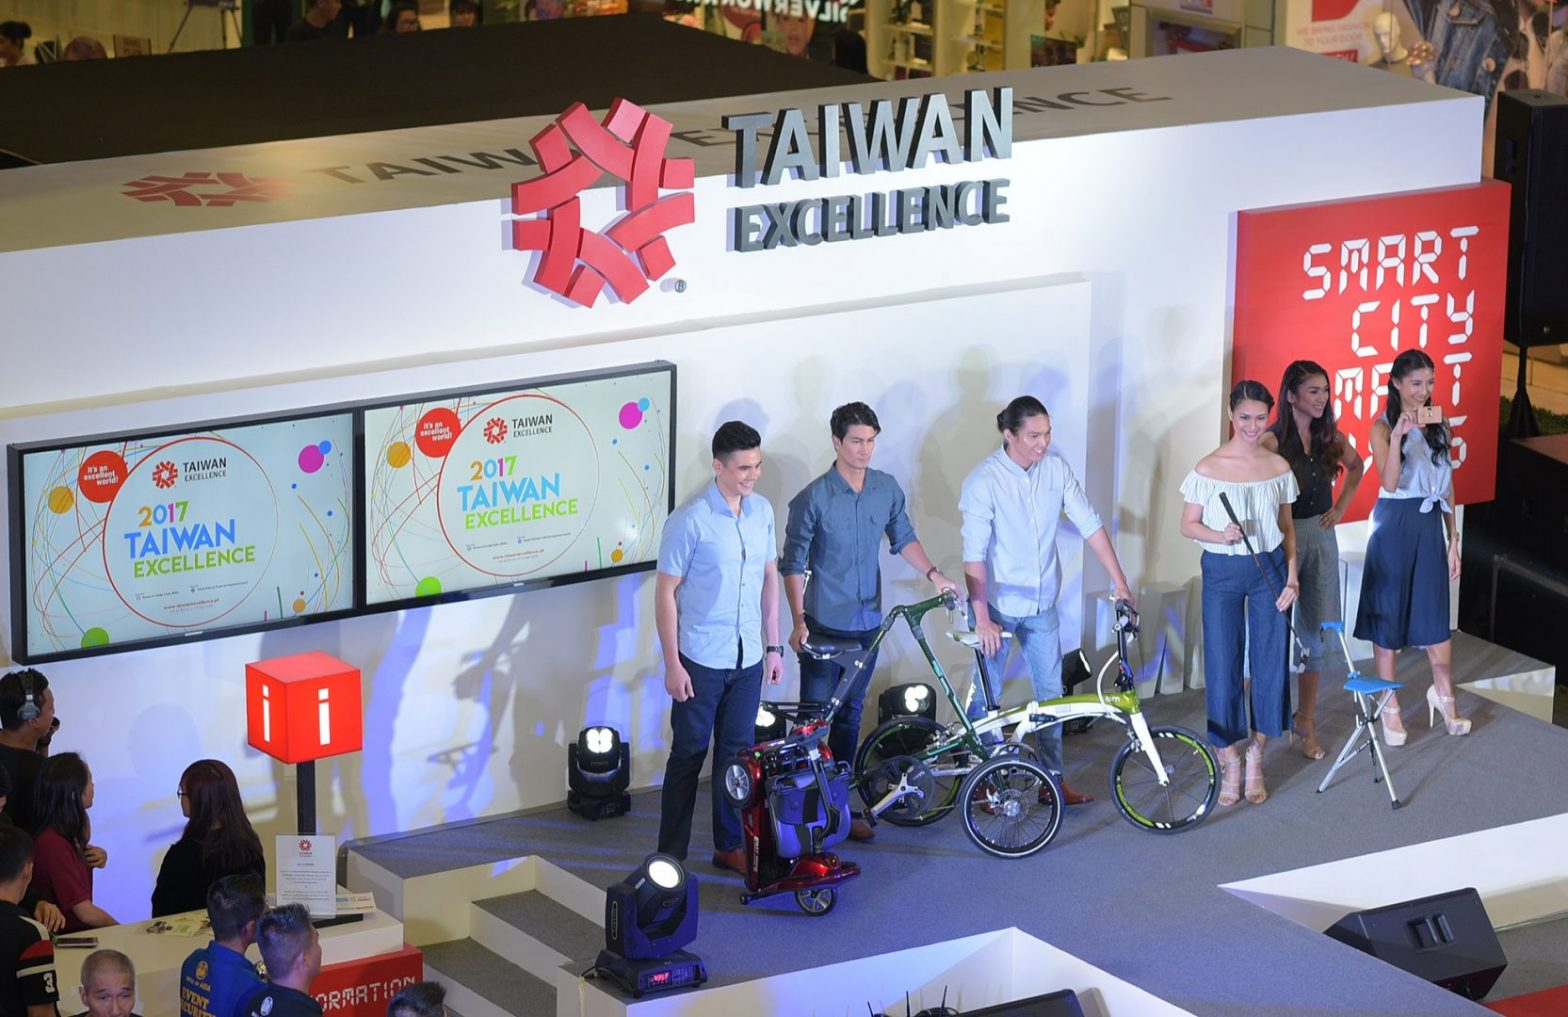 Fashion shows feature the stylish new products at the Taiwan Excellence Experience Zone